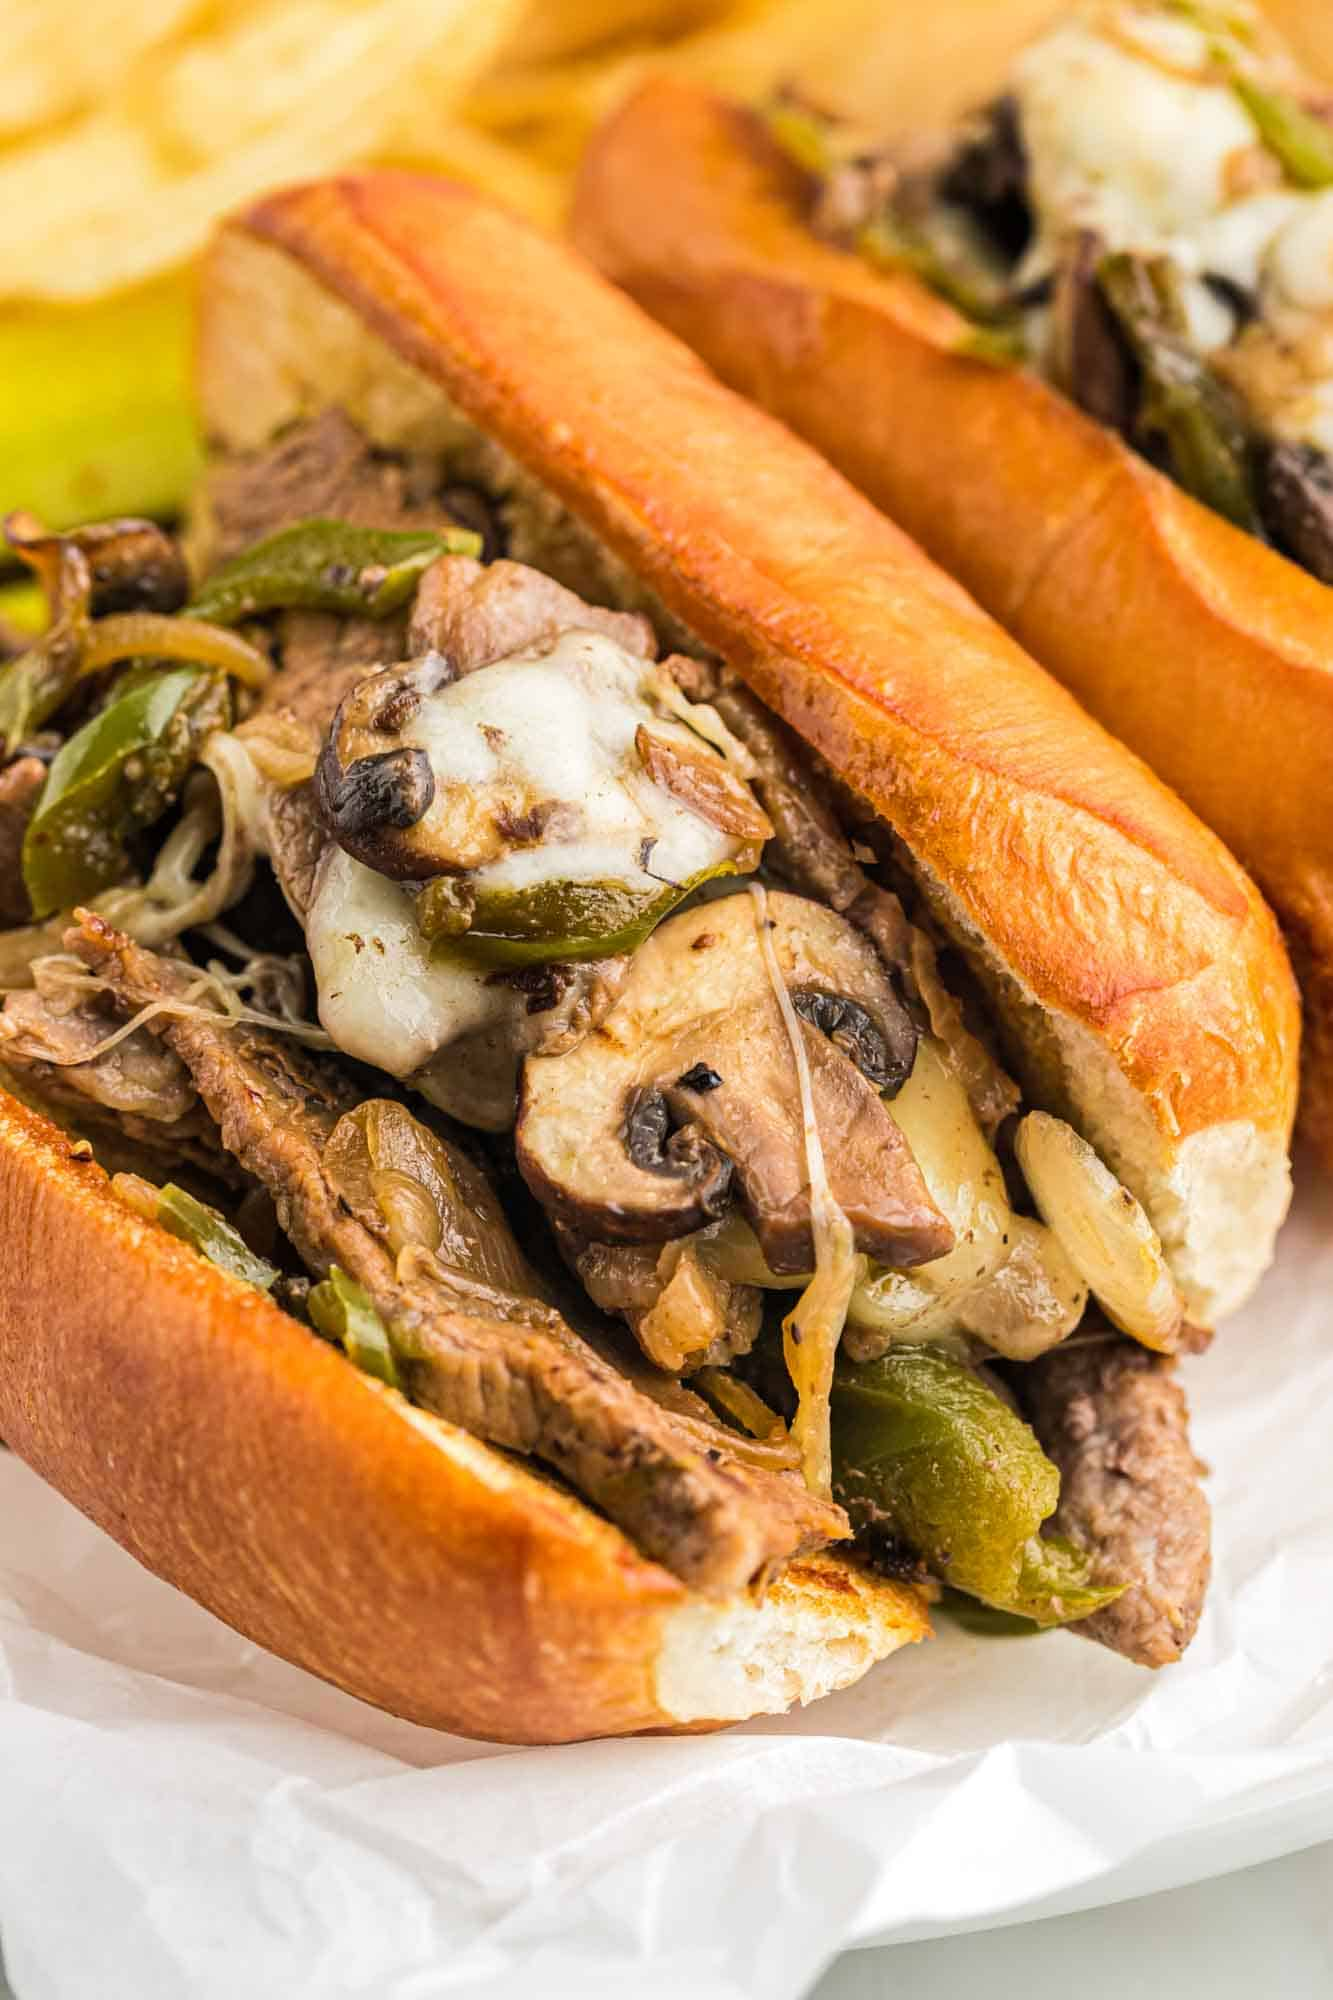 Philly cheesesteak sandwiches served on a plate